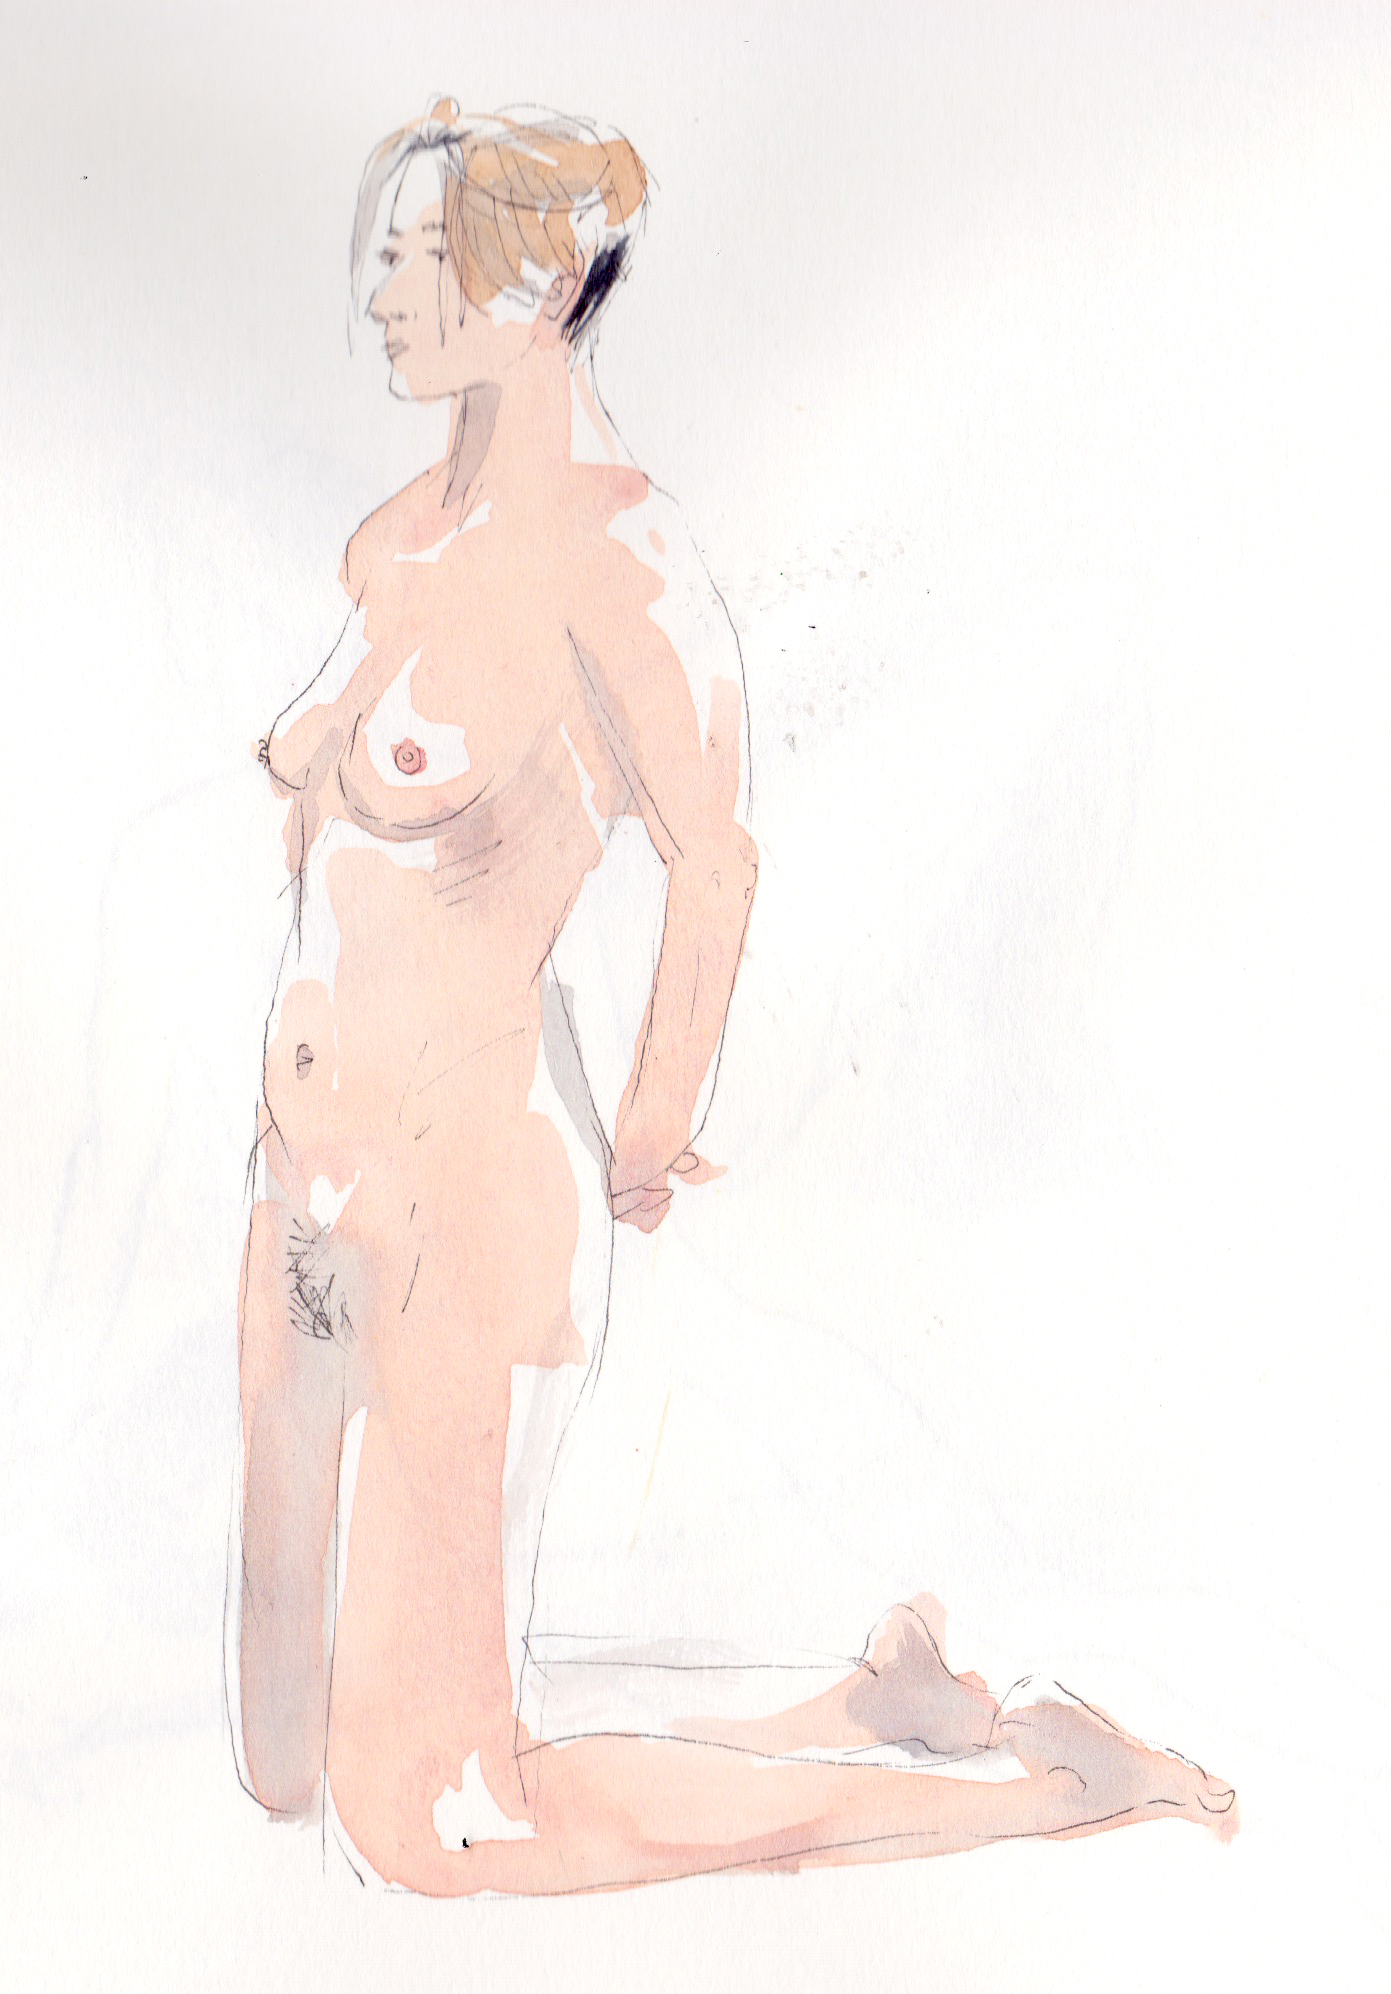 lifedrawing 16